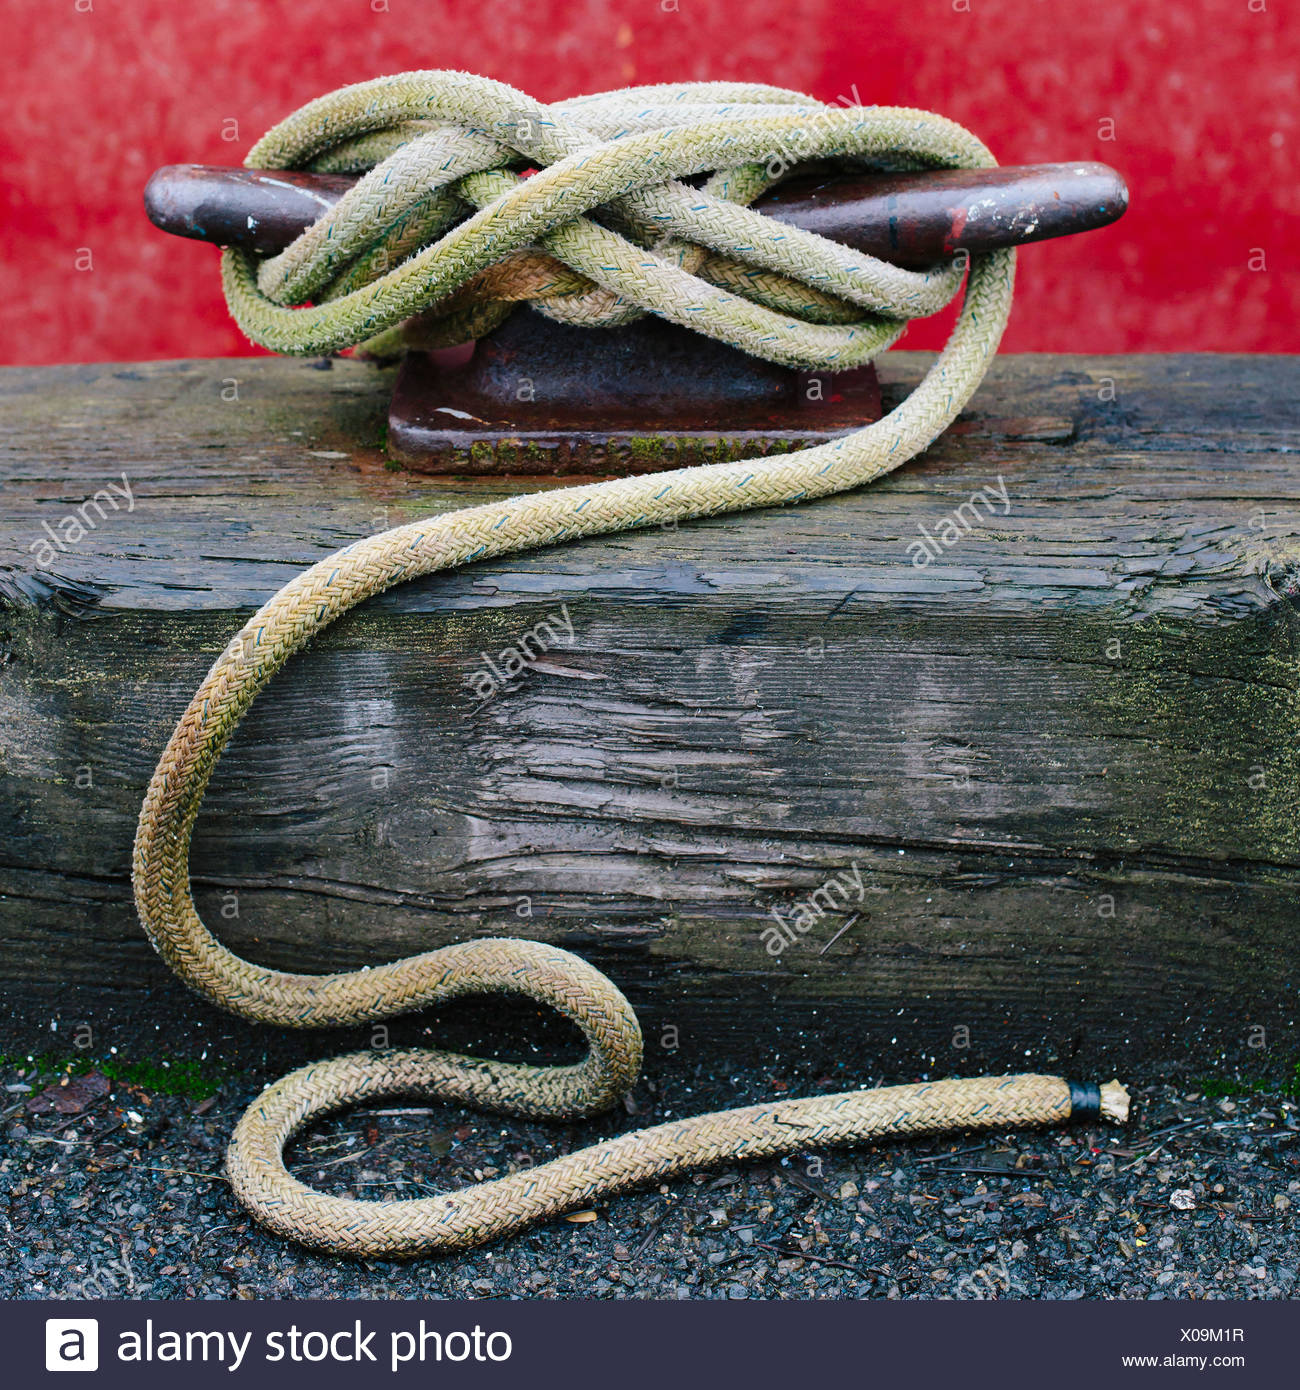 Close up of a wharfside mooring cleat with a fishing boat rope tied around it. - Stock Image